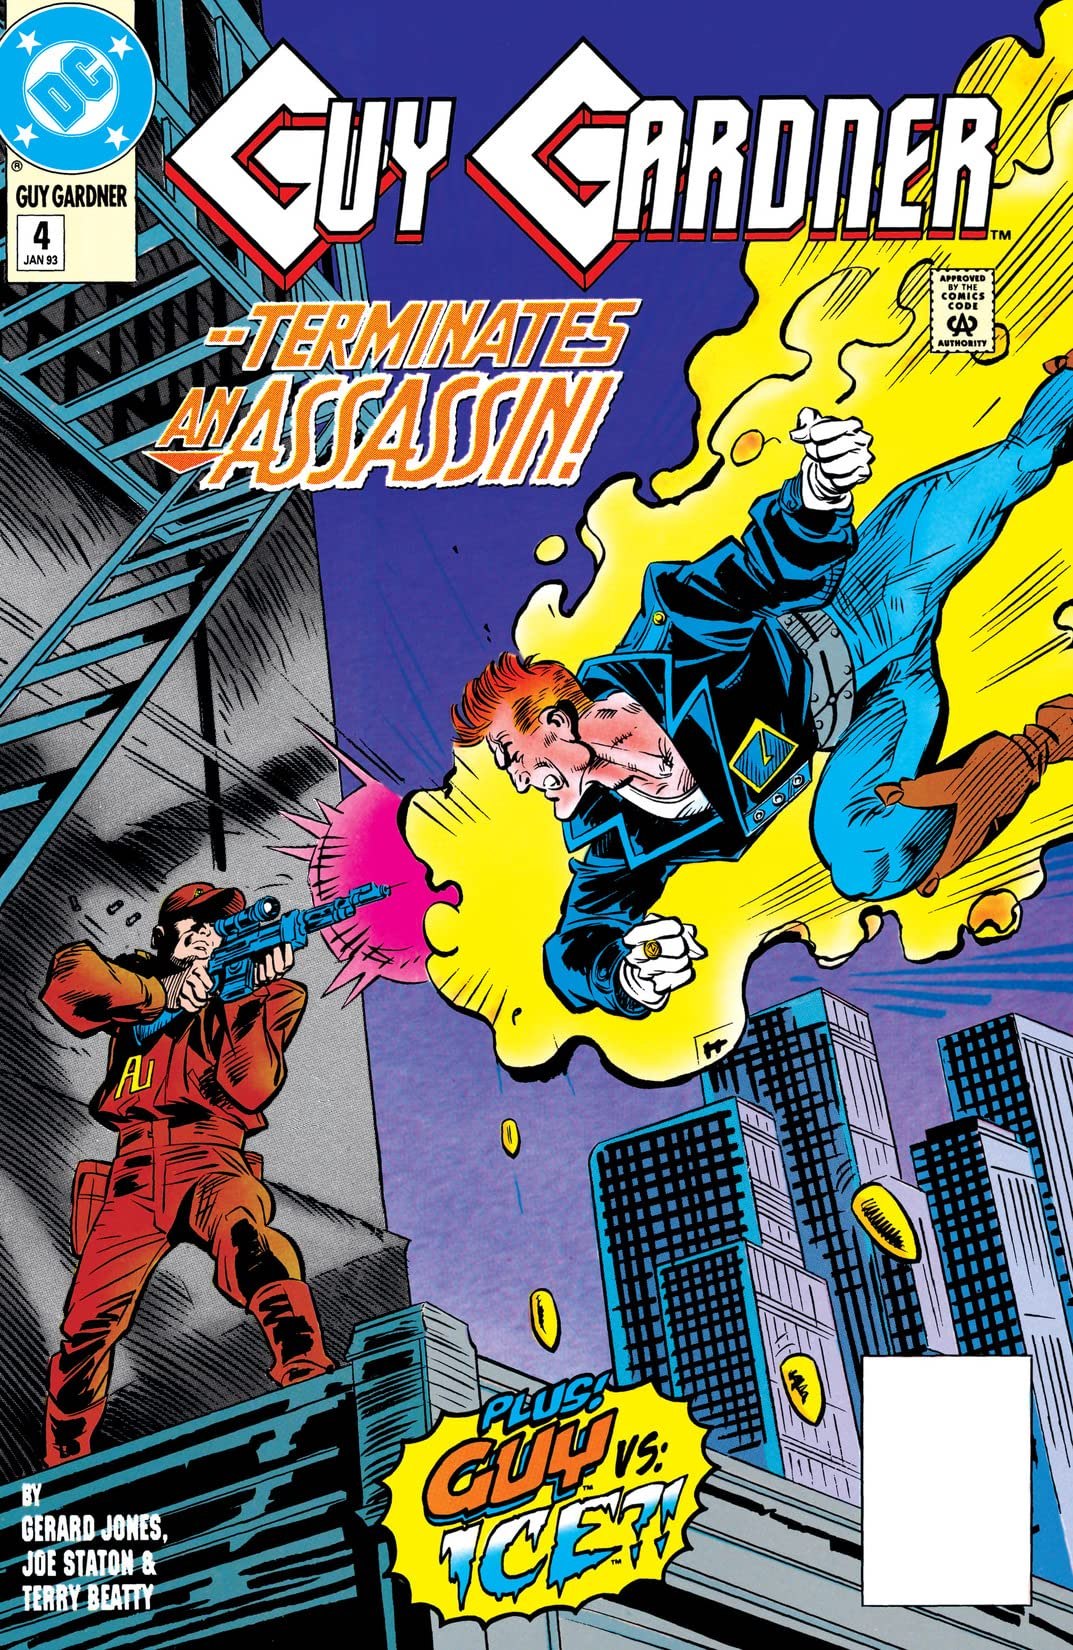 Guy Gardner: Warrior (1992-1996) #4